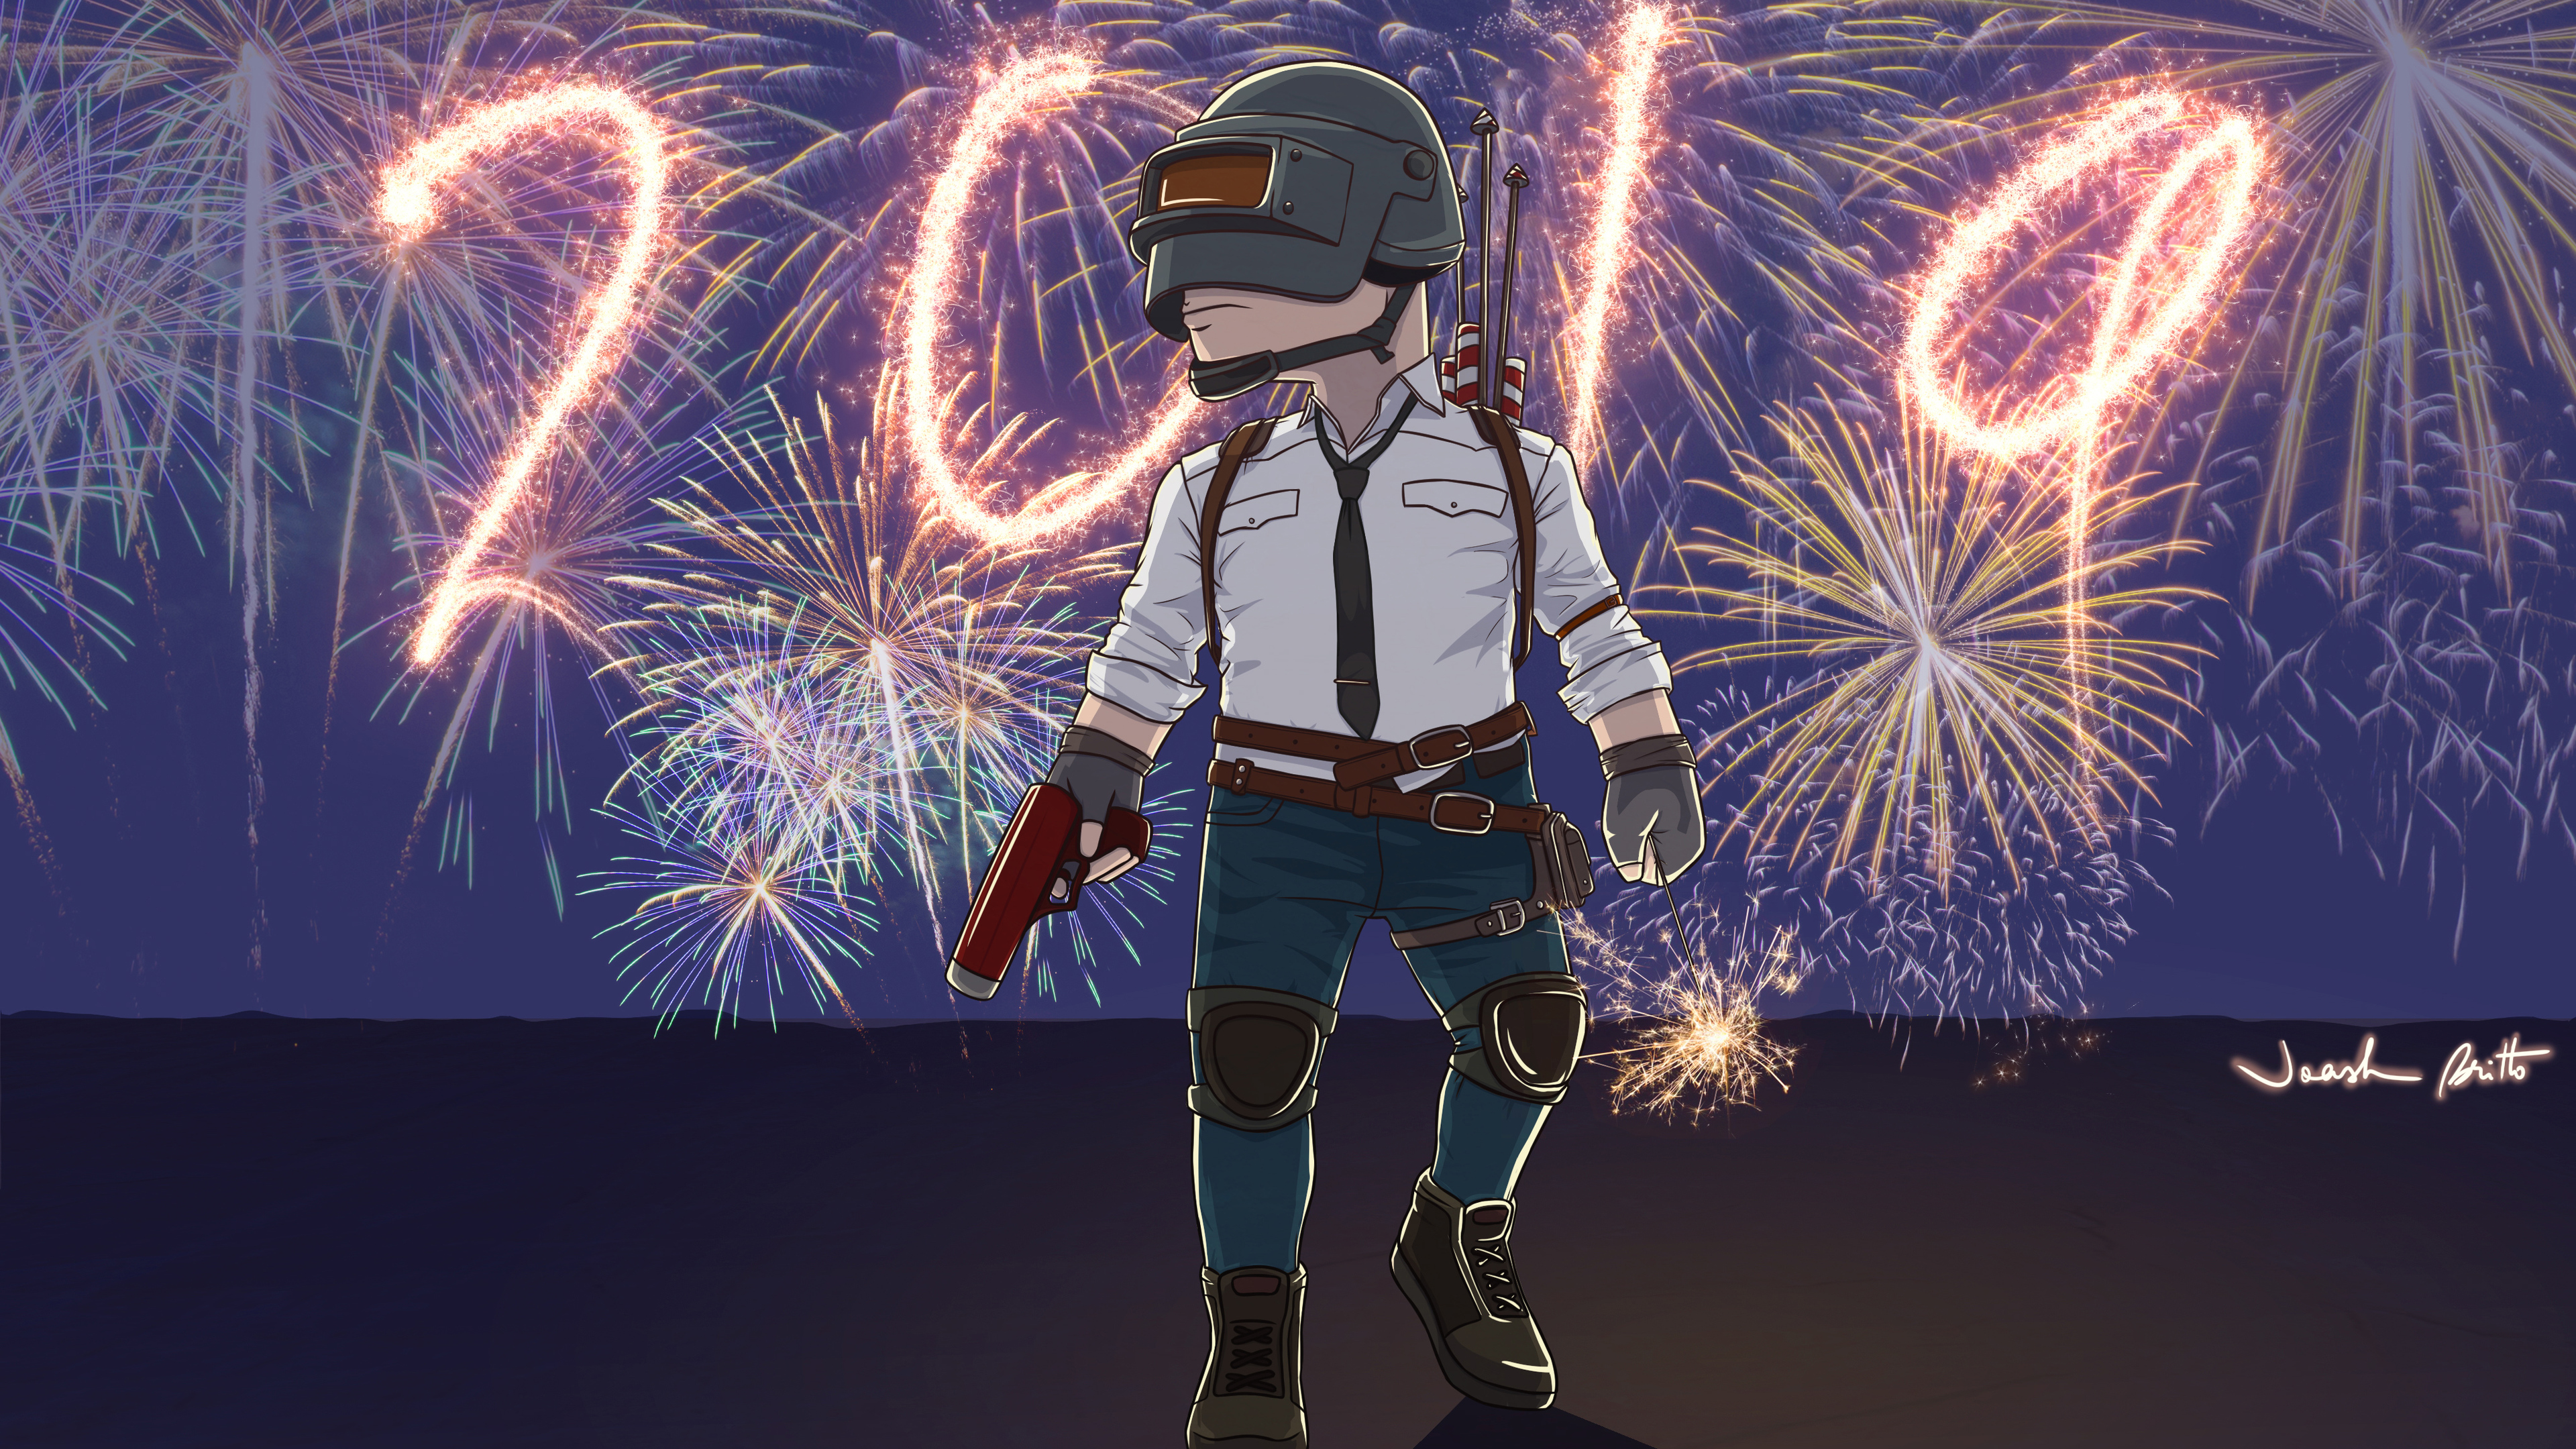 pubg new year 4k 1553074494 - Pubg New Year 4k - pubg wallpapers, hd-wallpapers, games wallpapers, 4k-wallpapers